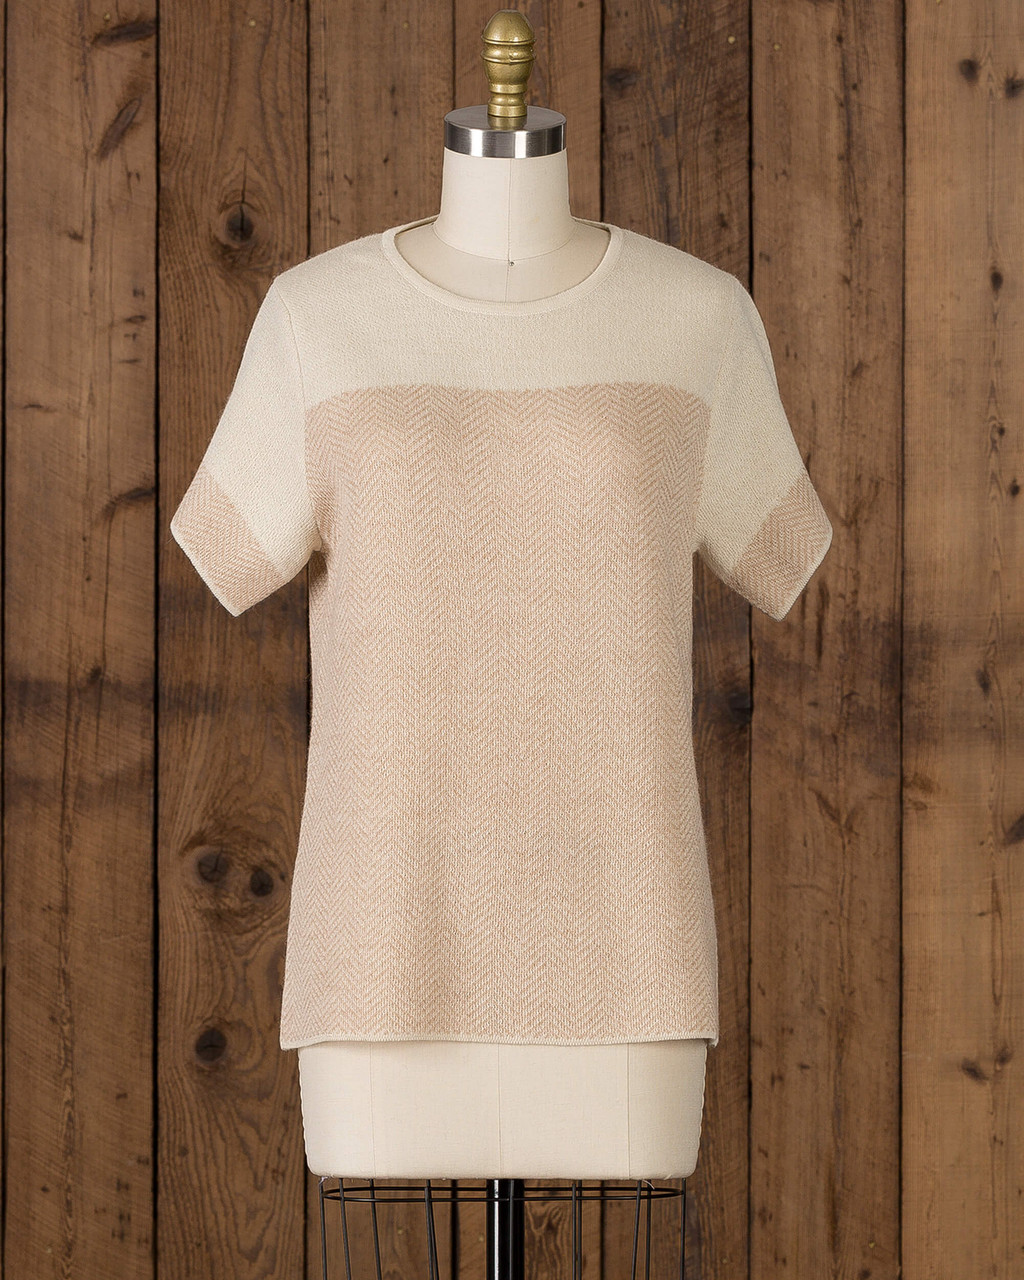 alicia adams alpaca alana top, womens alpaca sweater, lightweight womens alpaca top, alpaca sweater, alpaca vs cashmere, oatmeal ivory womens alpaca top